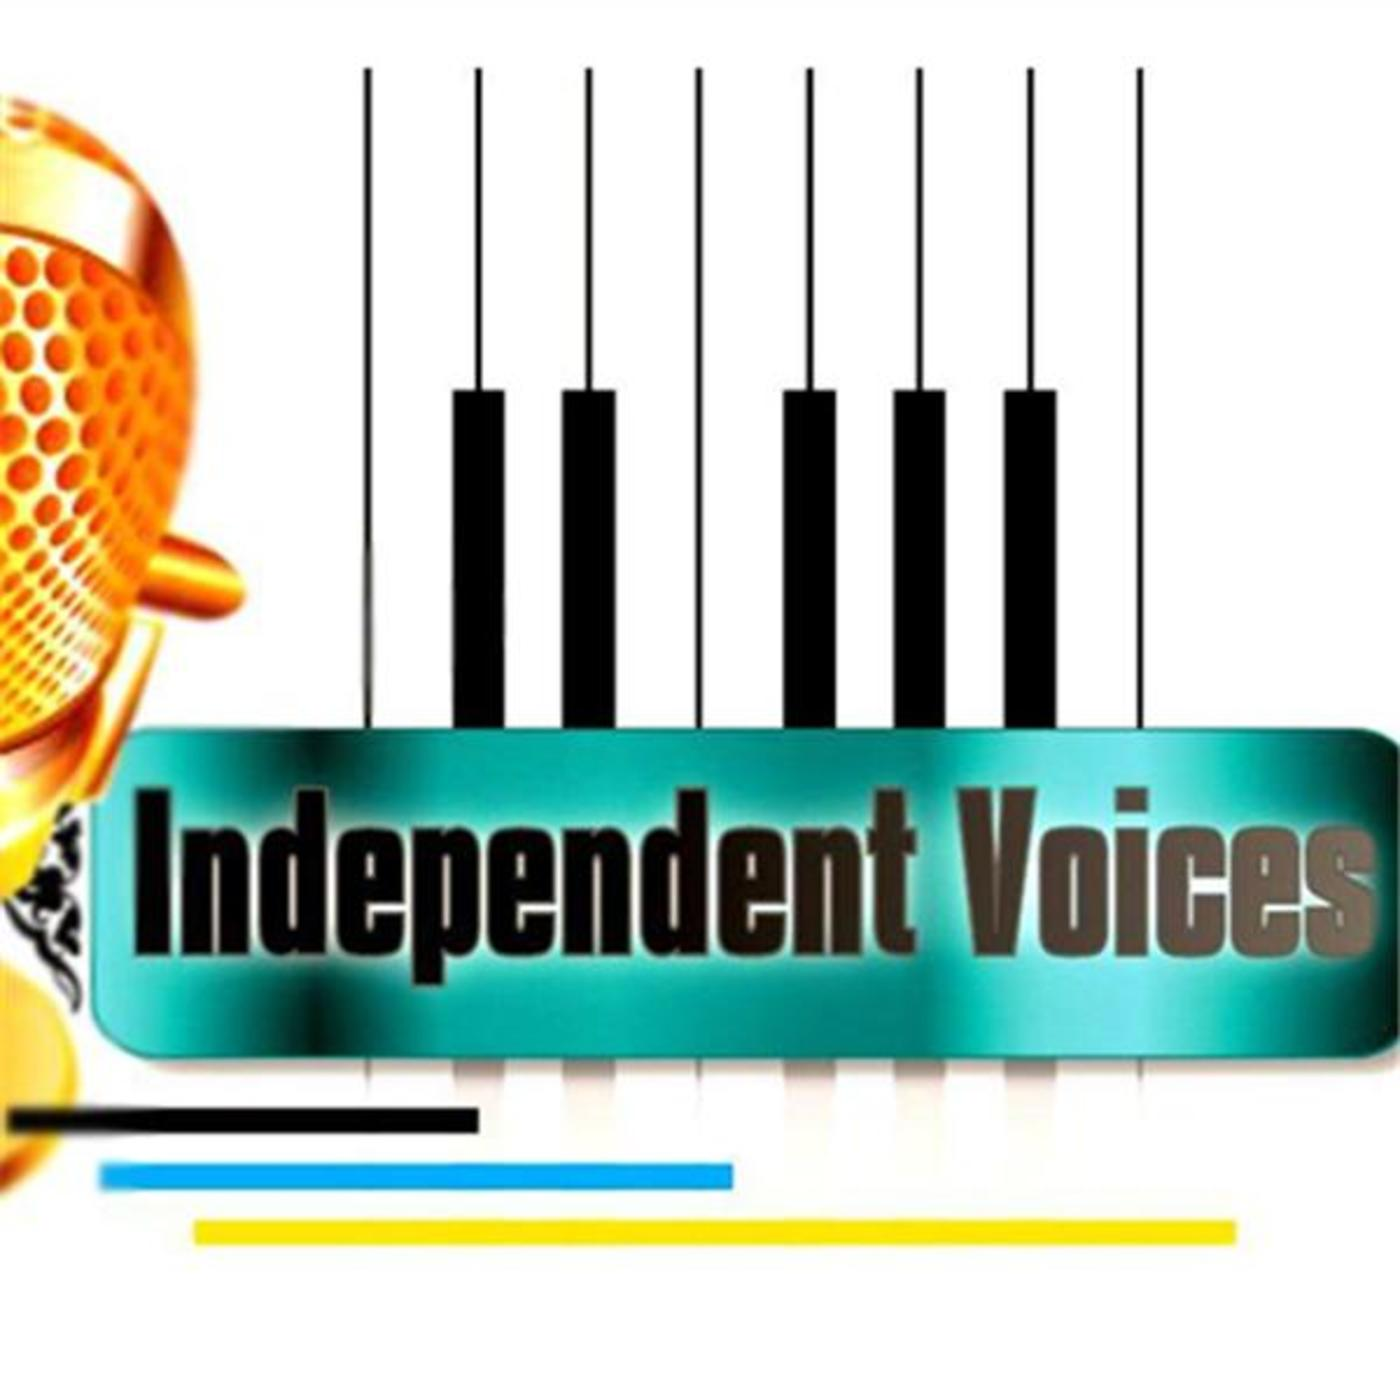 Independent Voices